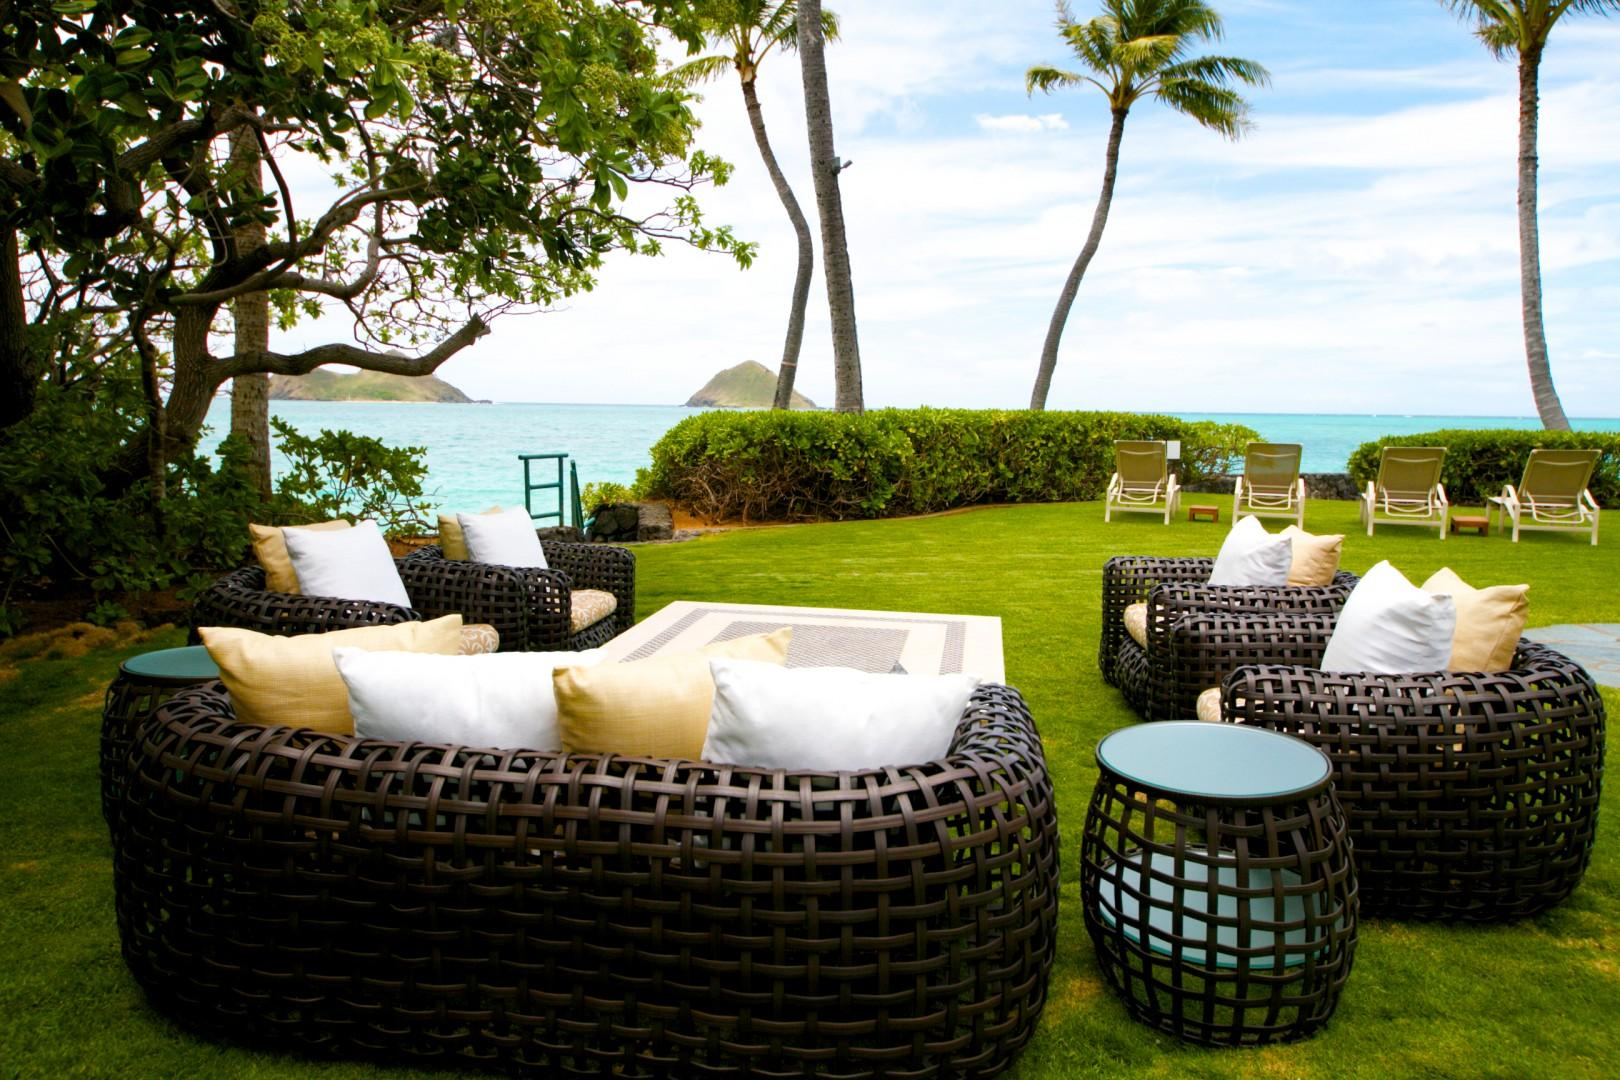 Ocean lawn fronting Guest House